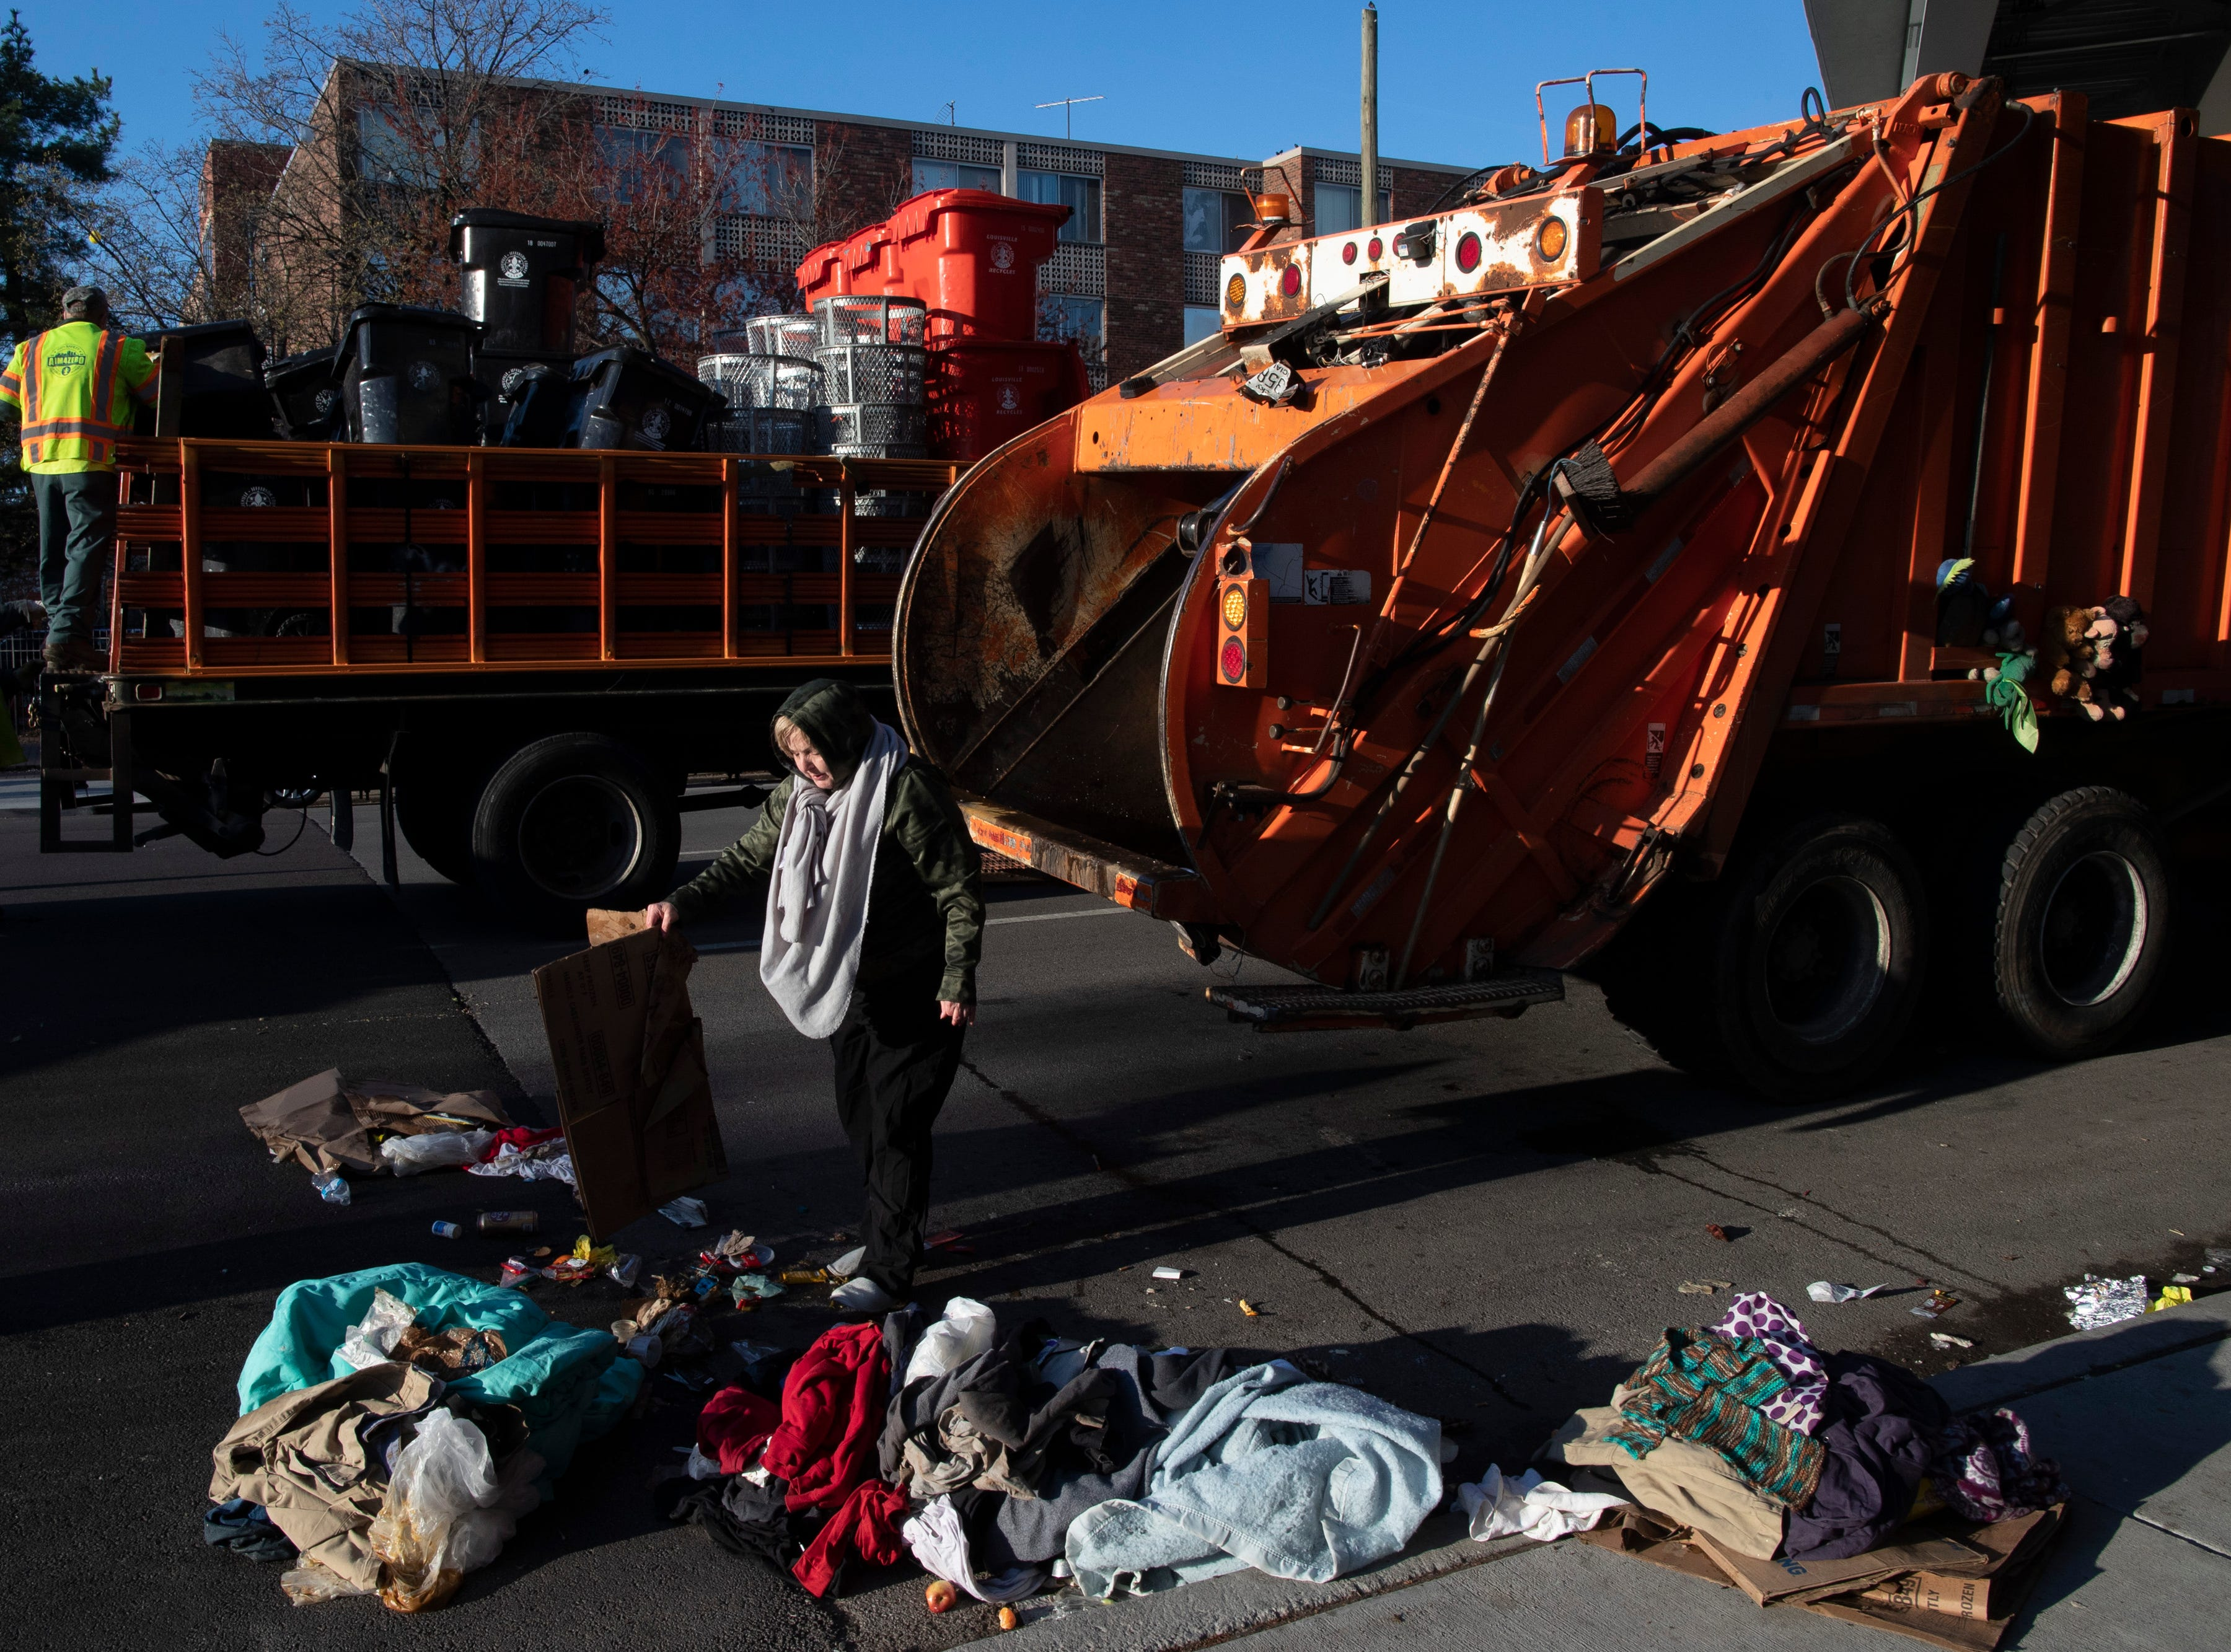 Paula Rae Russell Hunt goes through her things Louisville city crews clean out the homeless camp at the intersection of Jackson and Jefferson streets Monday morning. April 1, 2019